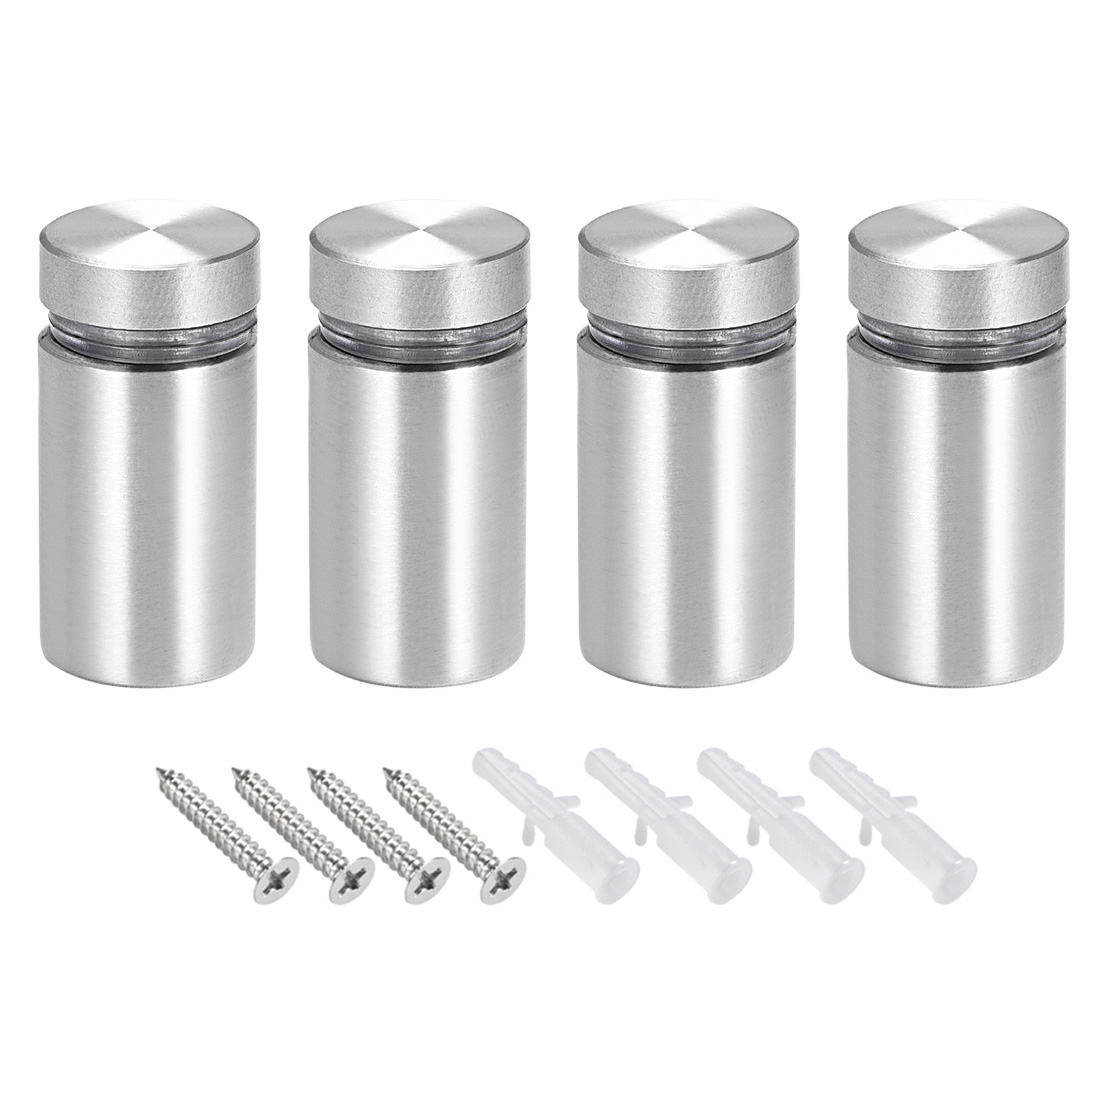 Glass Standoff Mount Solid Stainless Steel Wall Standoff Holder 16mmx28mm 4 Pcs